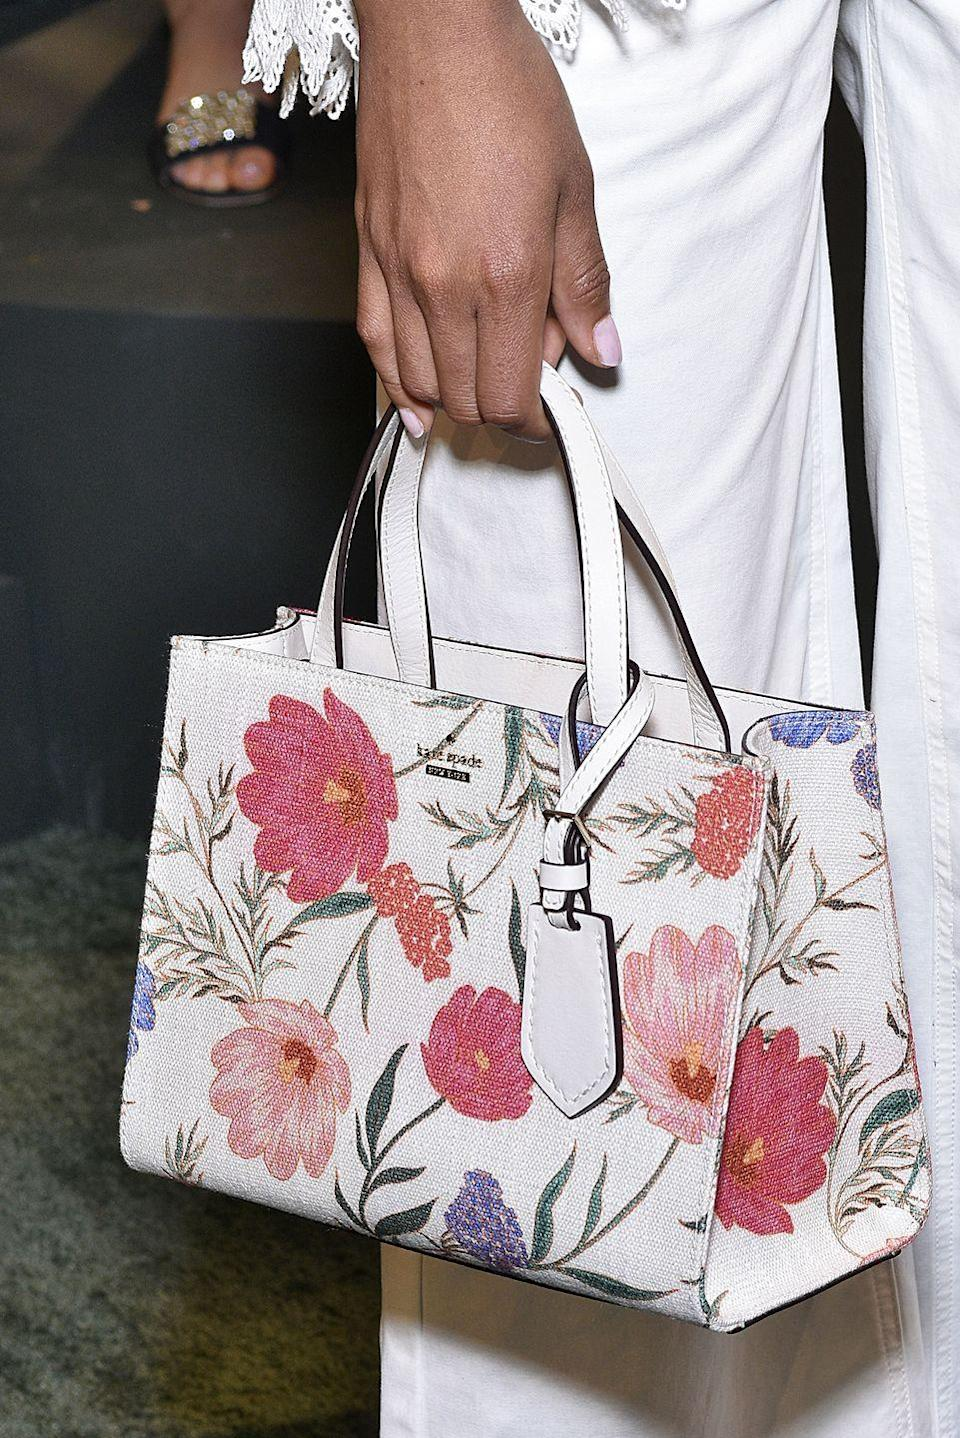 <p>This was the boxiest bag in the best way possible, and it seemed like everyone owned one. The late Kate Spade designed the waterproof nylon purse when she started the company in 1993, and it became so iconic that it was relaunched in 2018, seen here. </p>